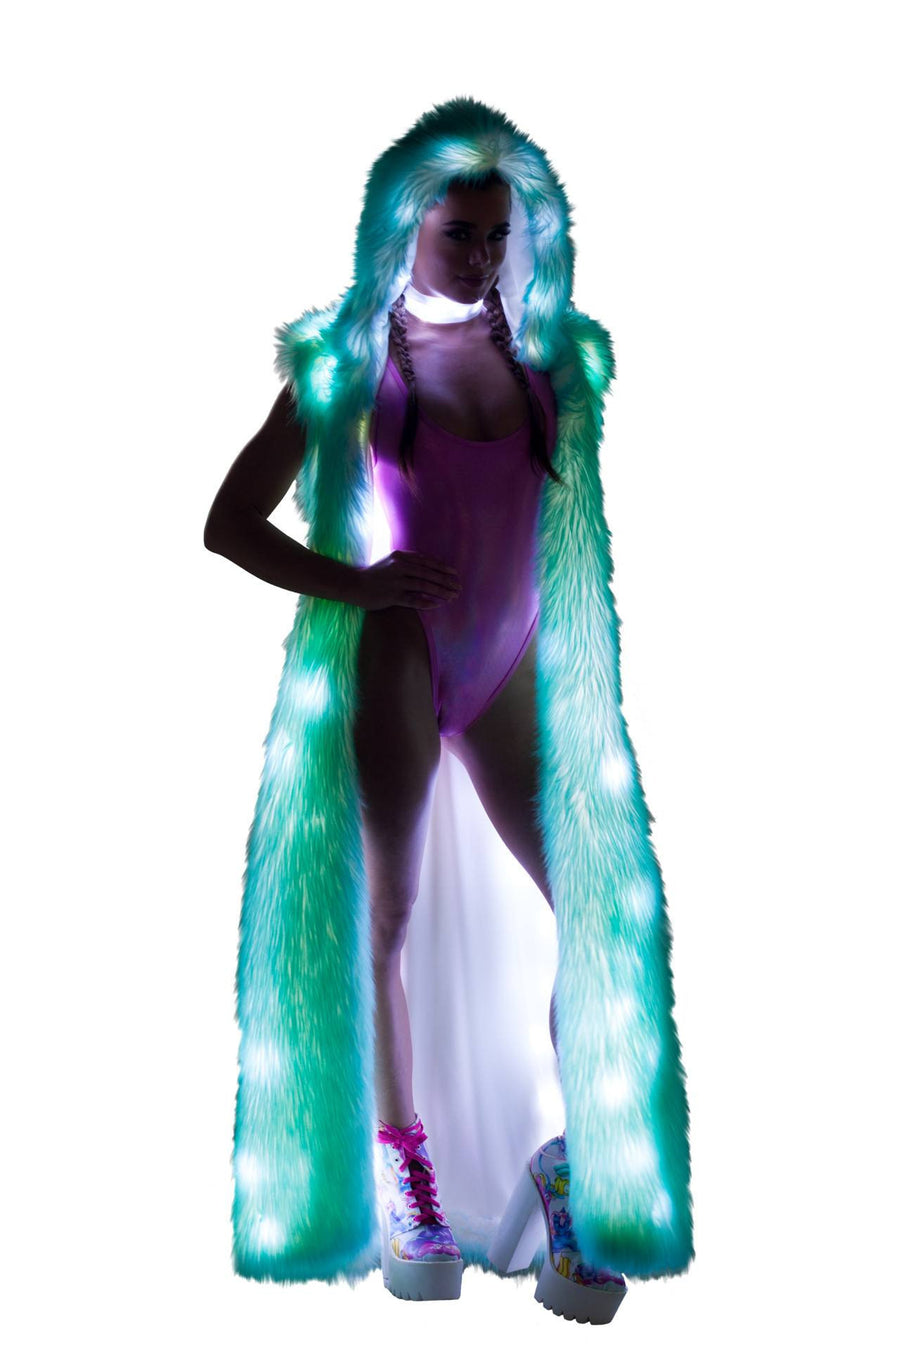 J-Valentine Aqua Tips Light-Up Hooded Duster - Light-Up Hooded Duster, J-Valentine, YourLamode